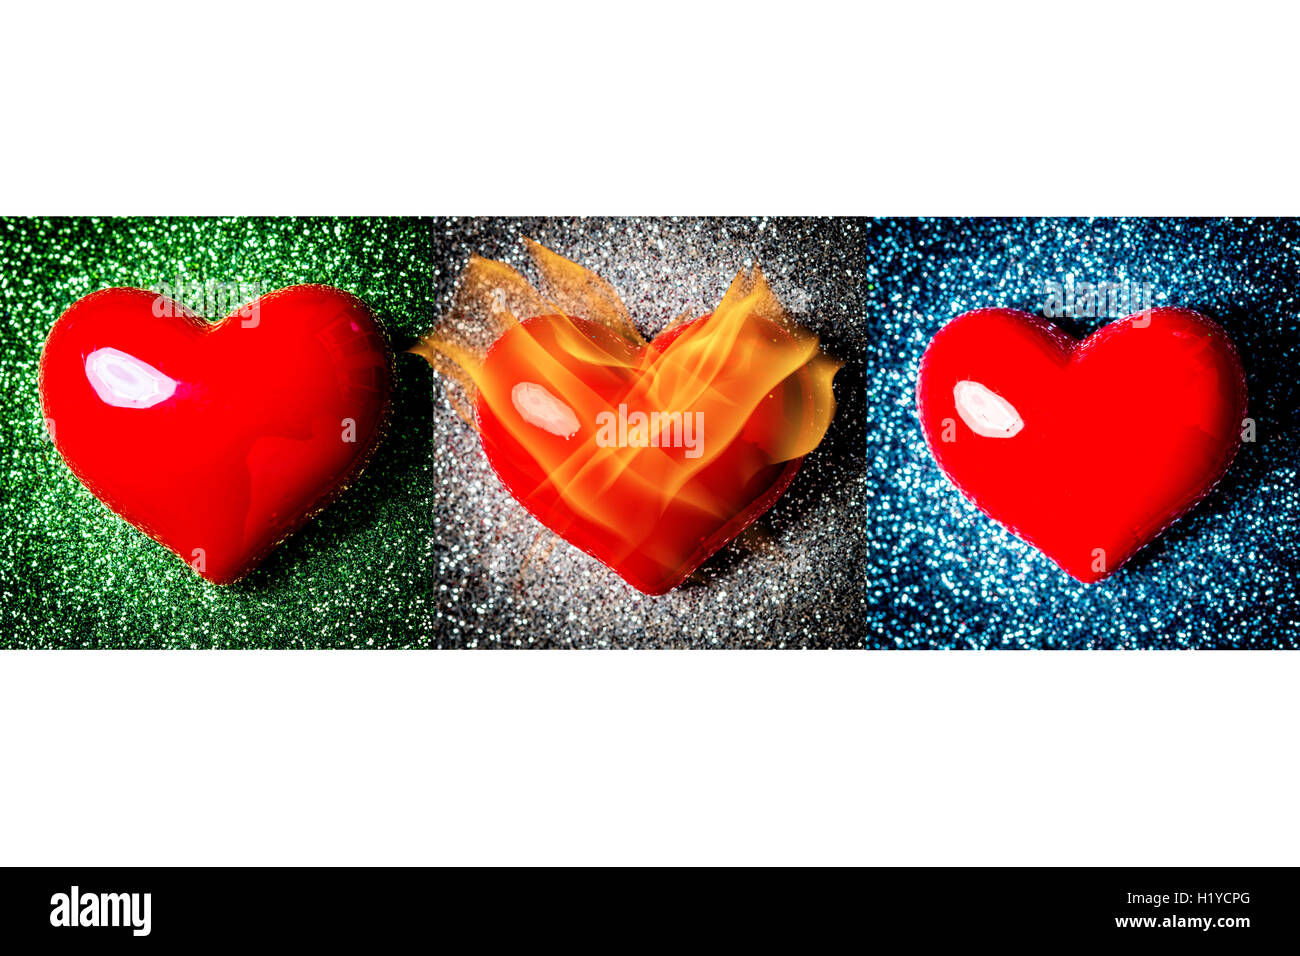 Conceptual image of increased cardiovascular risk in women after 55 year-old. - Stock Image